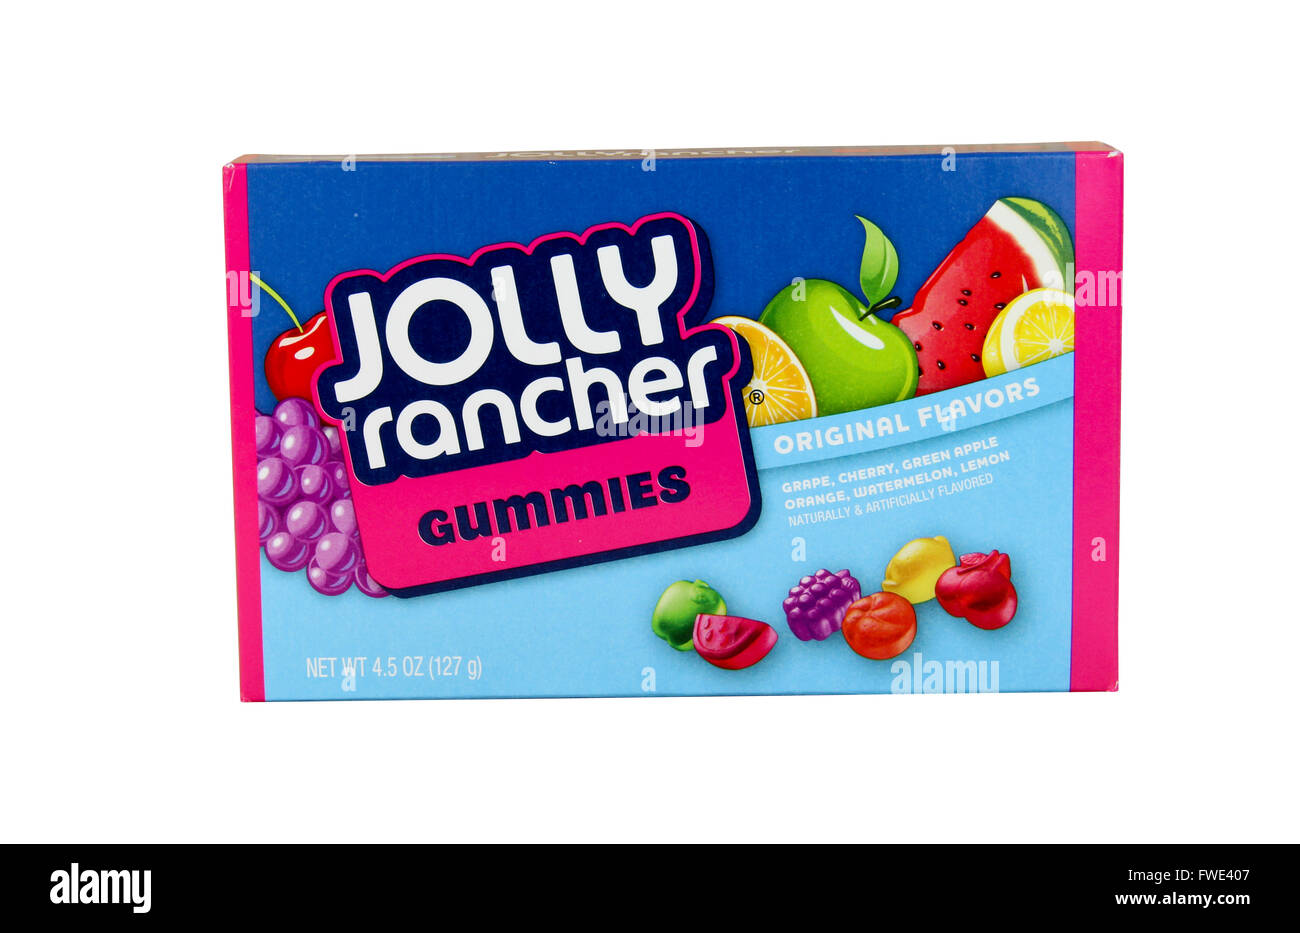 SPENCER , WISCONSIN, April,4, 2016    Box of Joly Rancher Gummies Candy   Jolly Rancher is a brand of sweet sour - Stock Image